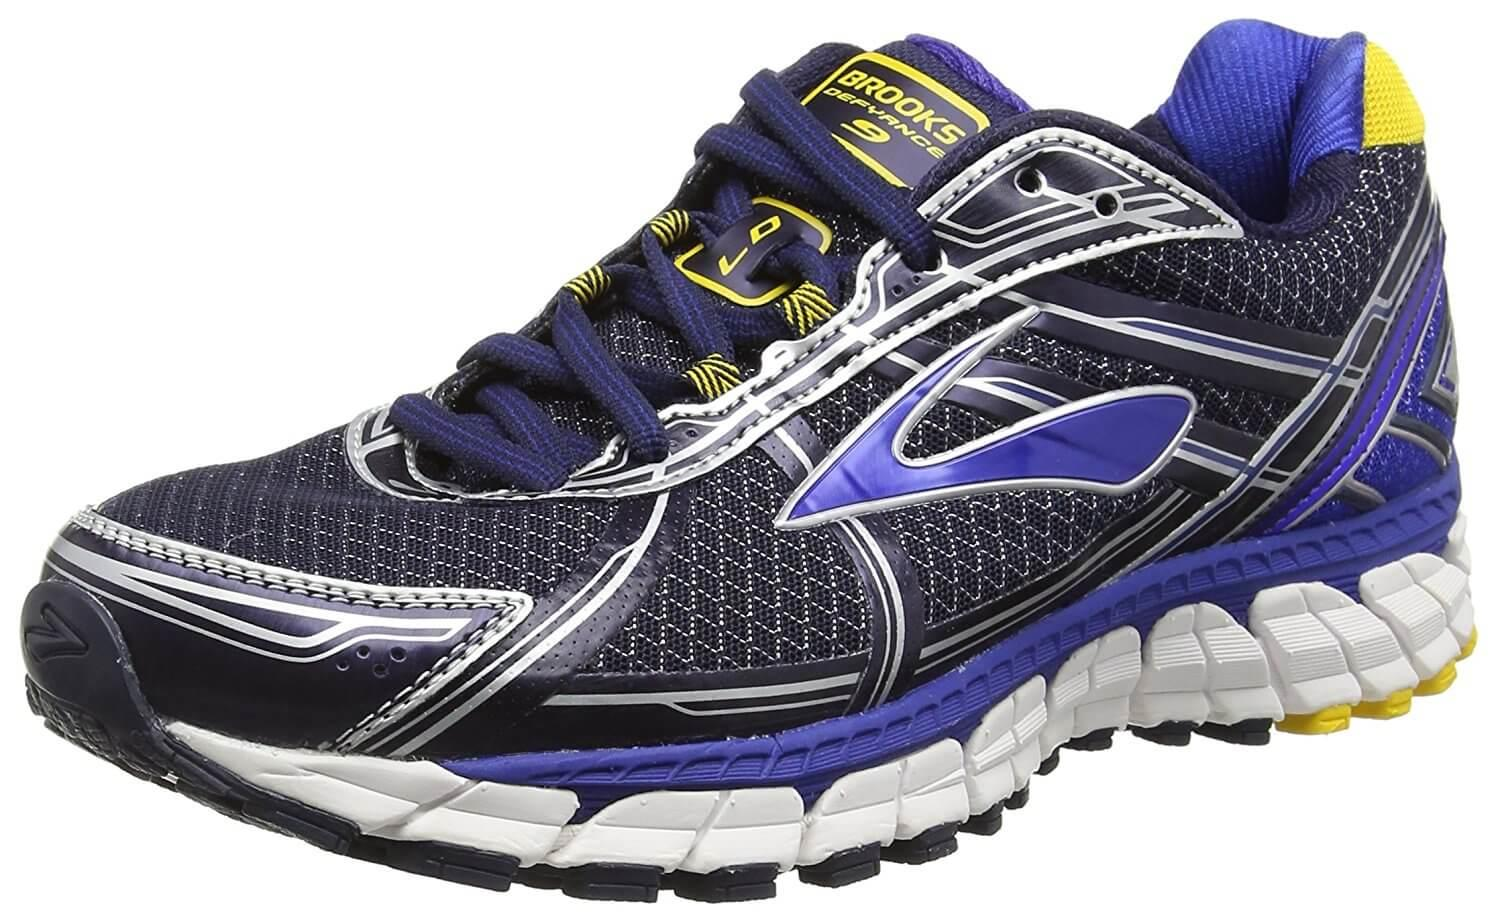 Brooks Defyance 9 is a stable shoe for heavier runners and everyday runners.